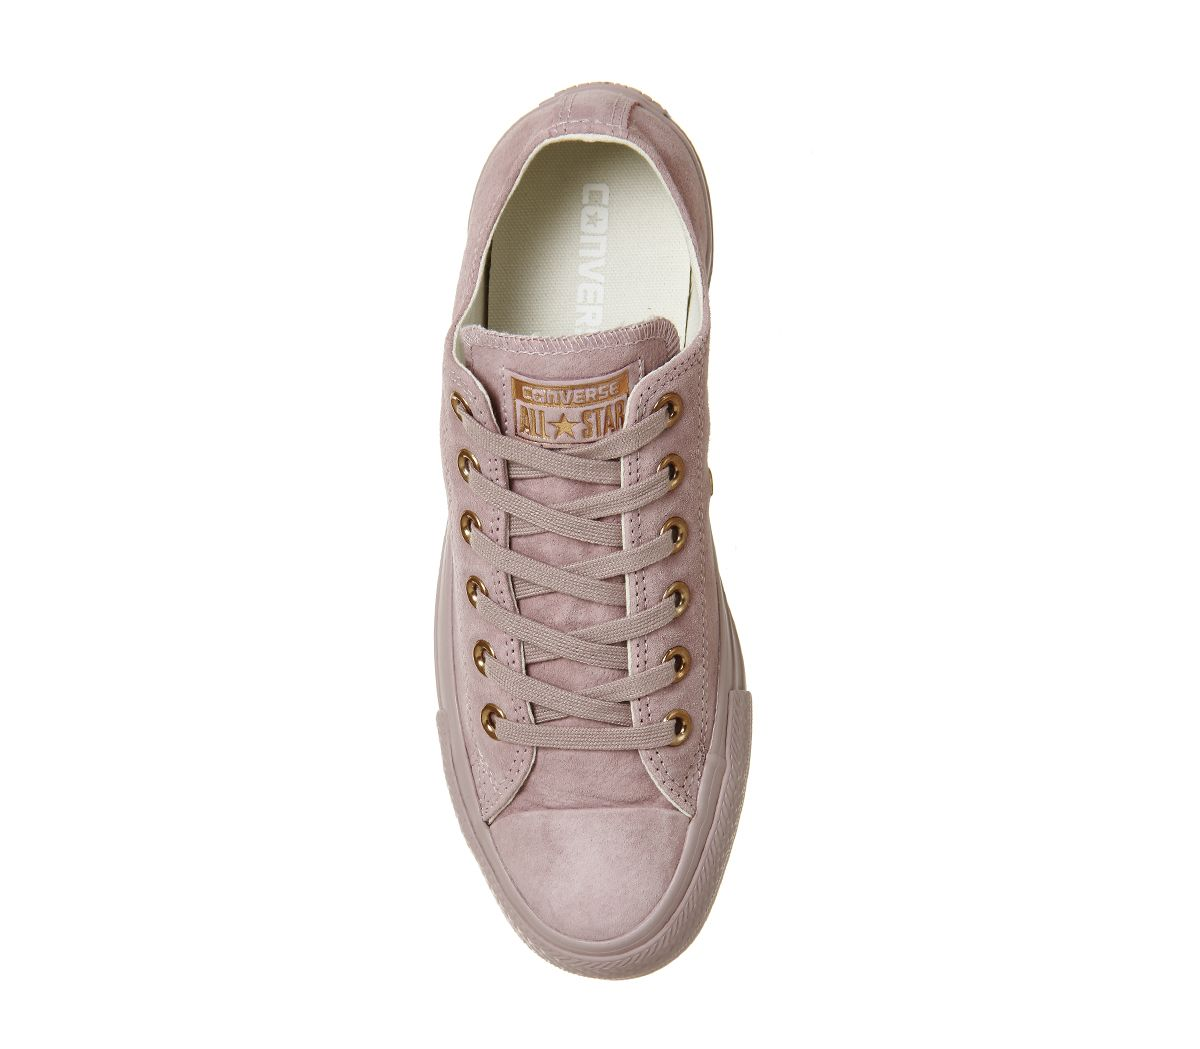 25025be6843e Converse All Star Low Leather Burnished Lilac Rose Gold Exclusive - Unisex  Sports